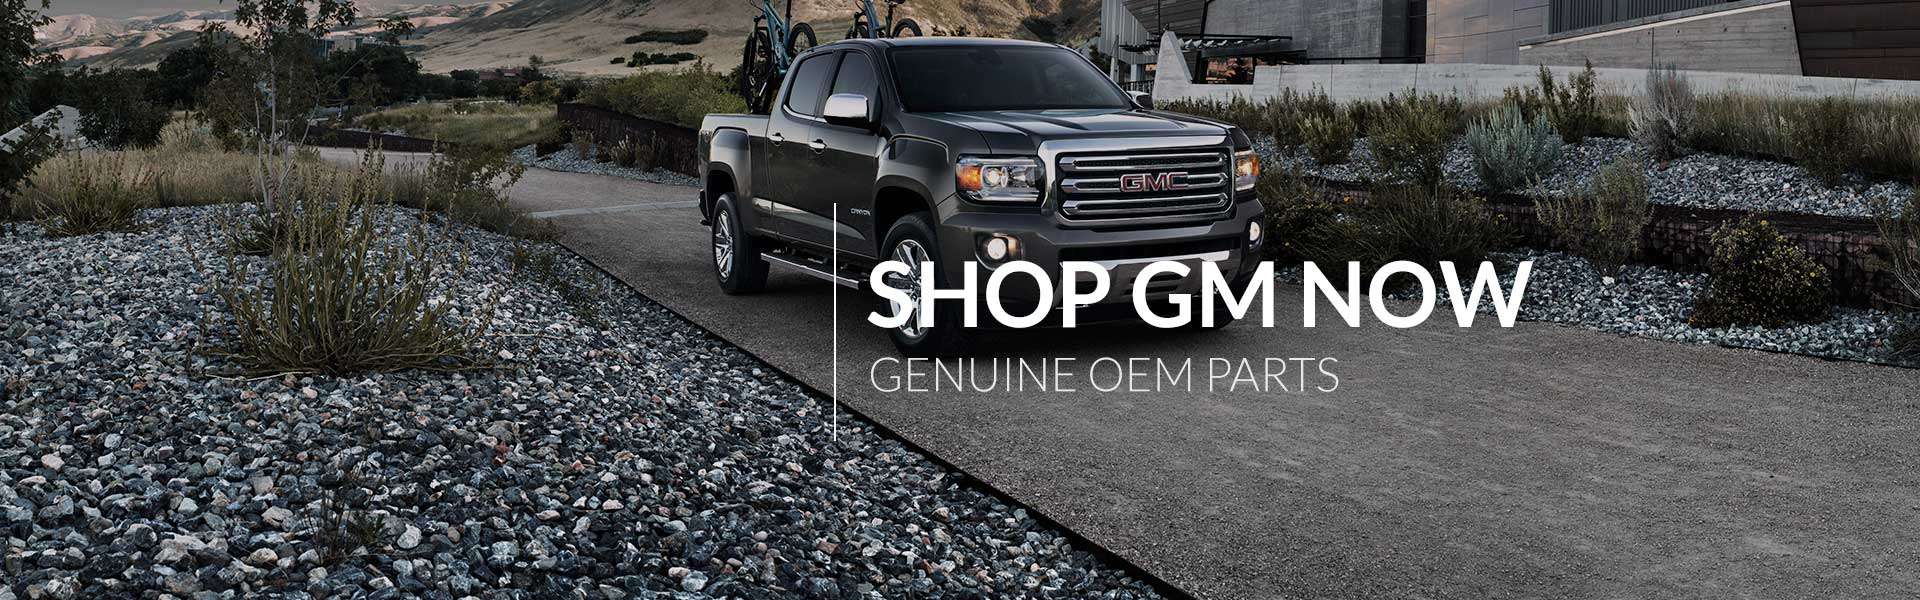 Shop GM parts now